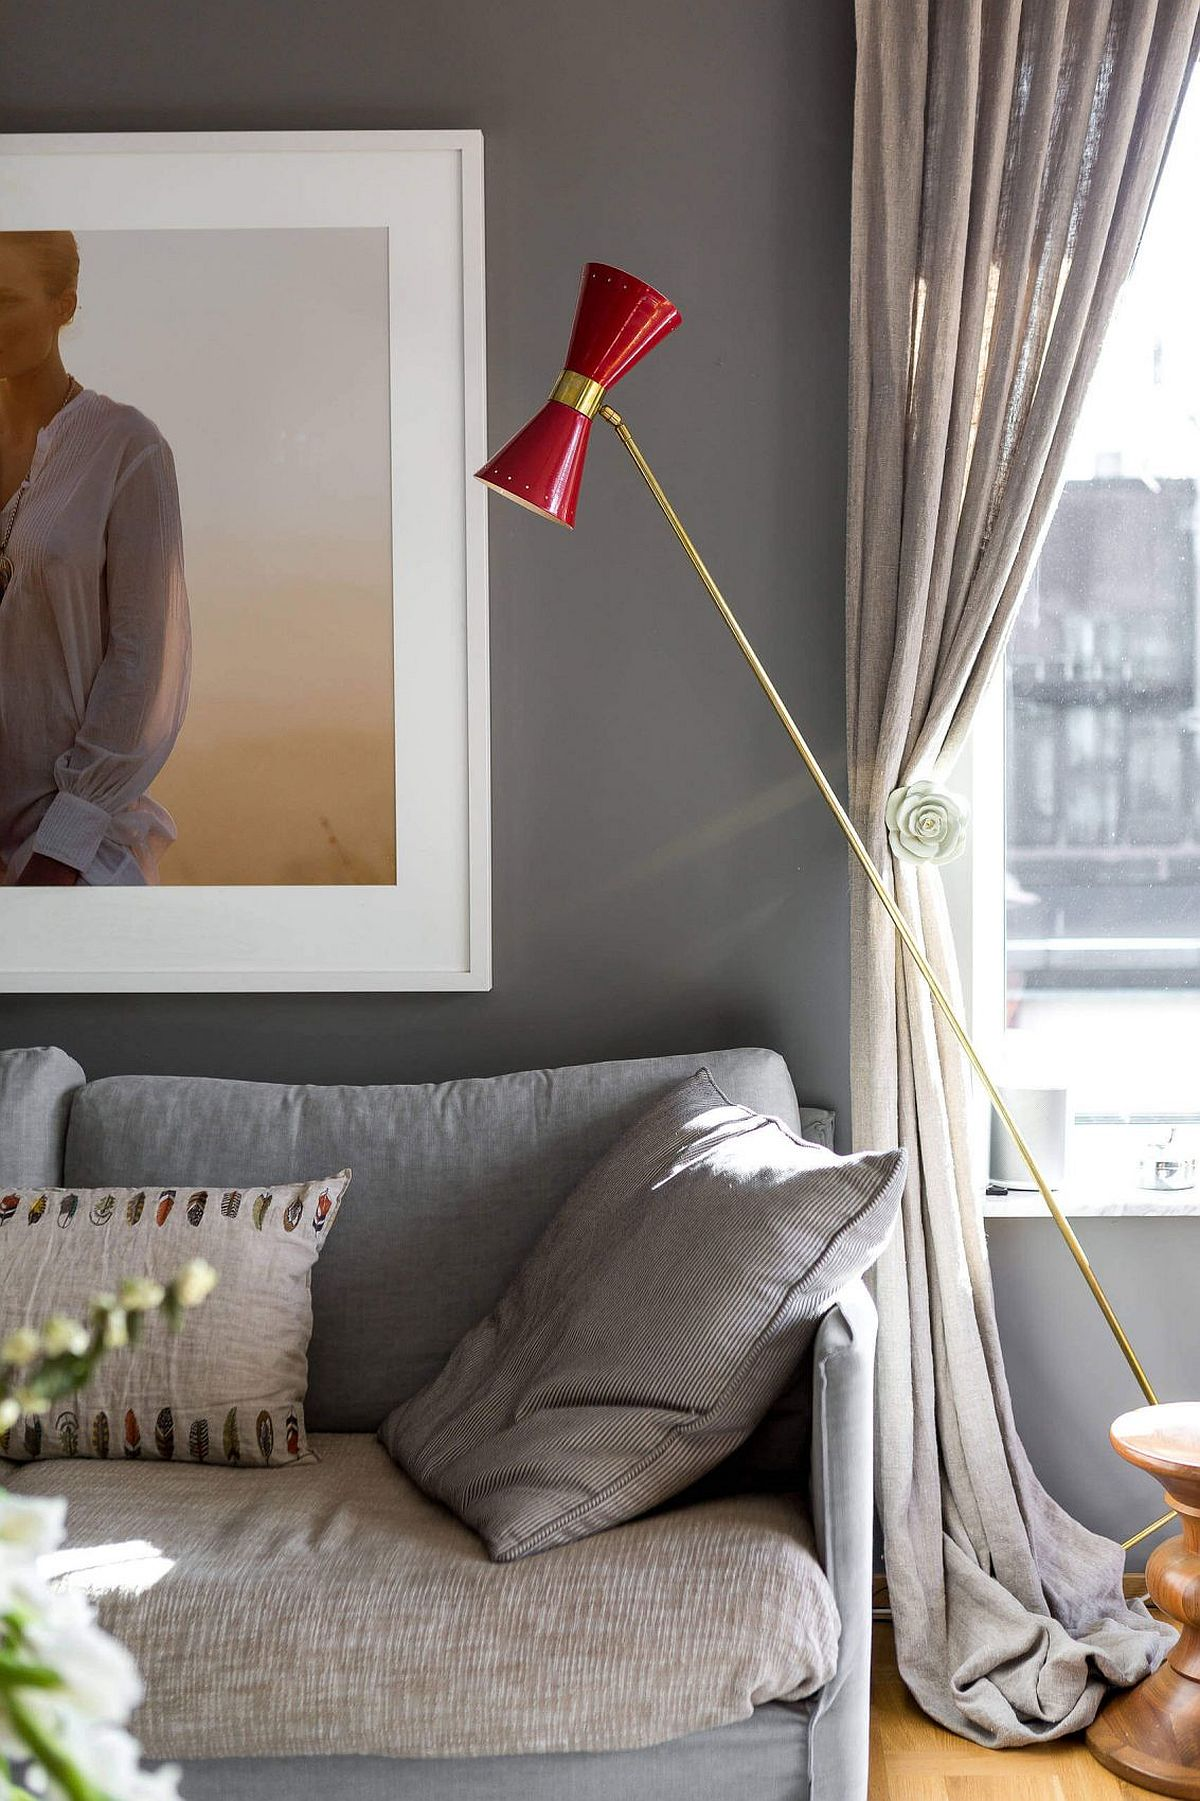 Floor lamp in gold and red for the Scandinavian style home